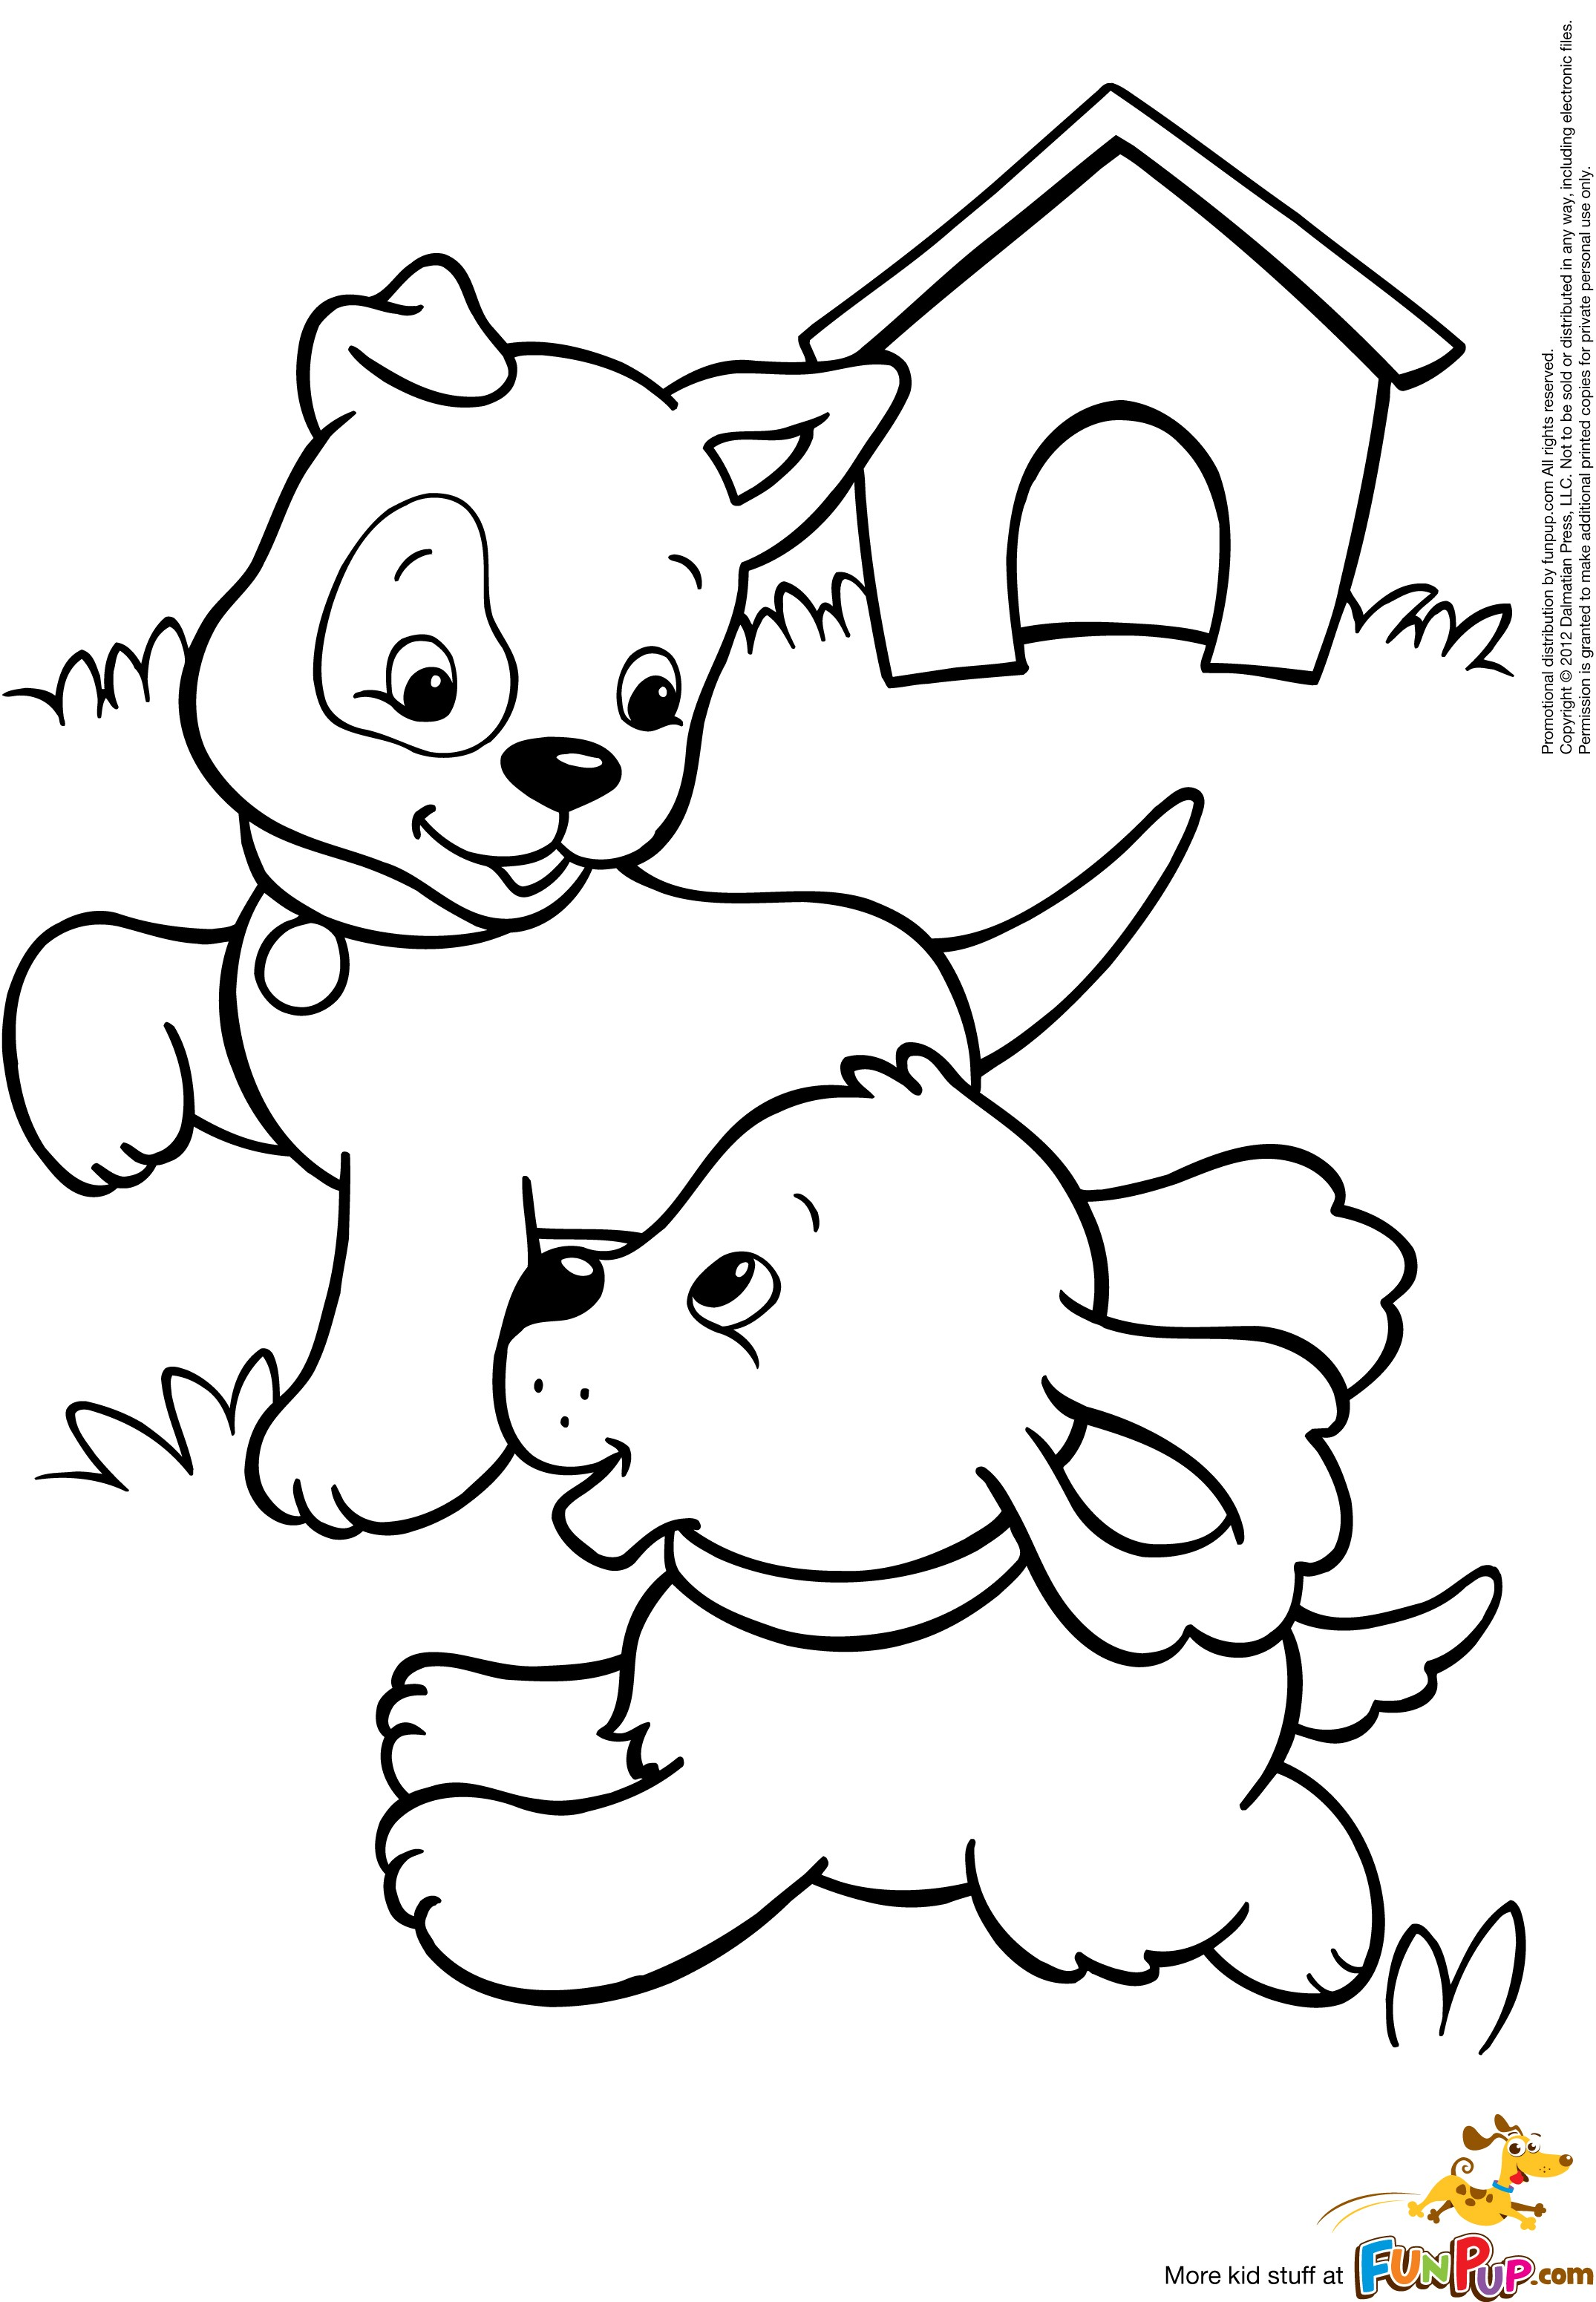 puppy realistic dog coloring pages realistic puppy coloring pages at getcoloringscom free coloring puppy pages realistic dog